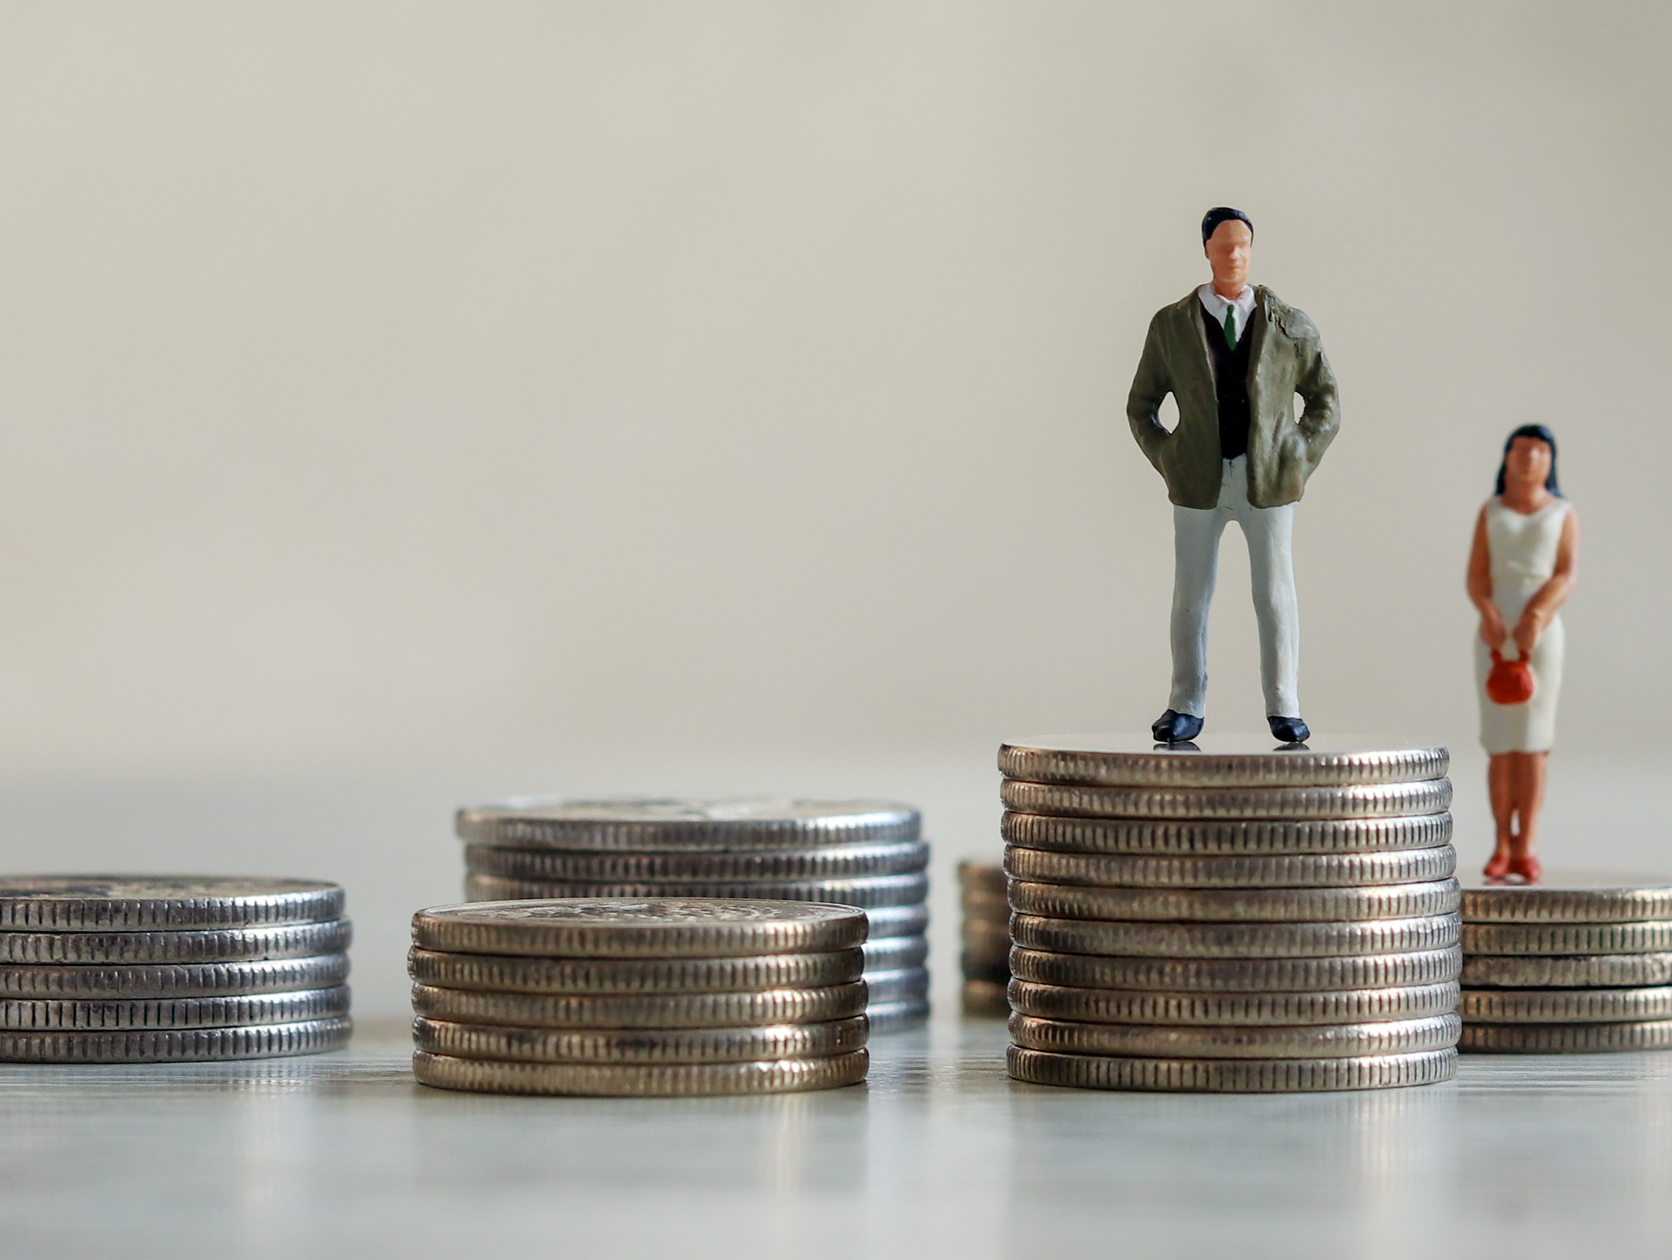 Compensation Practices / Pay Equity